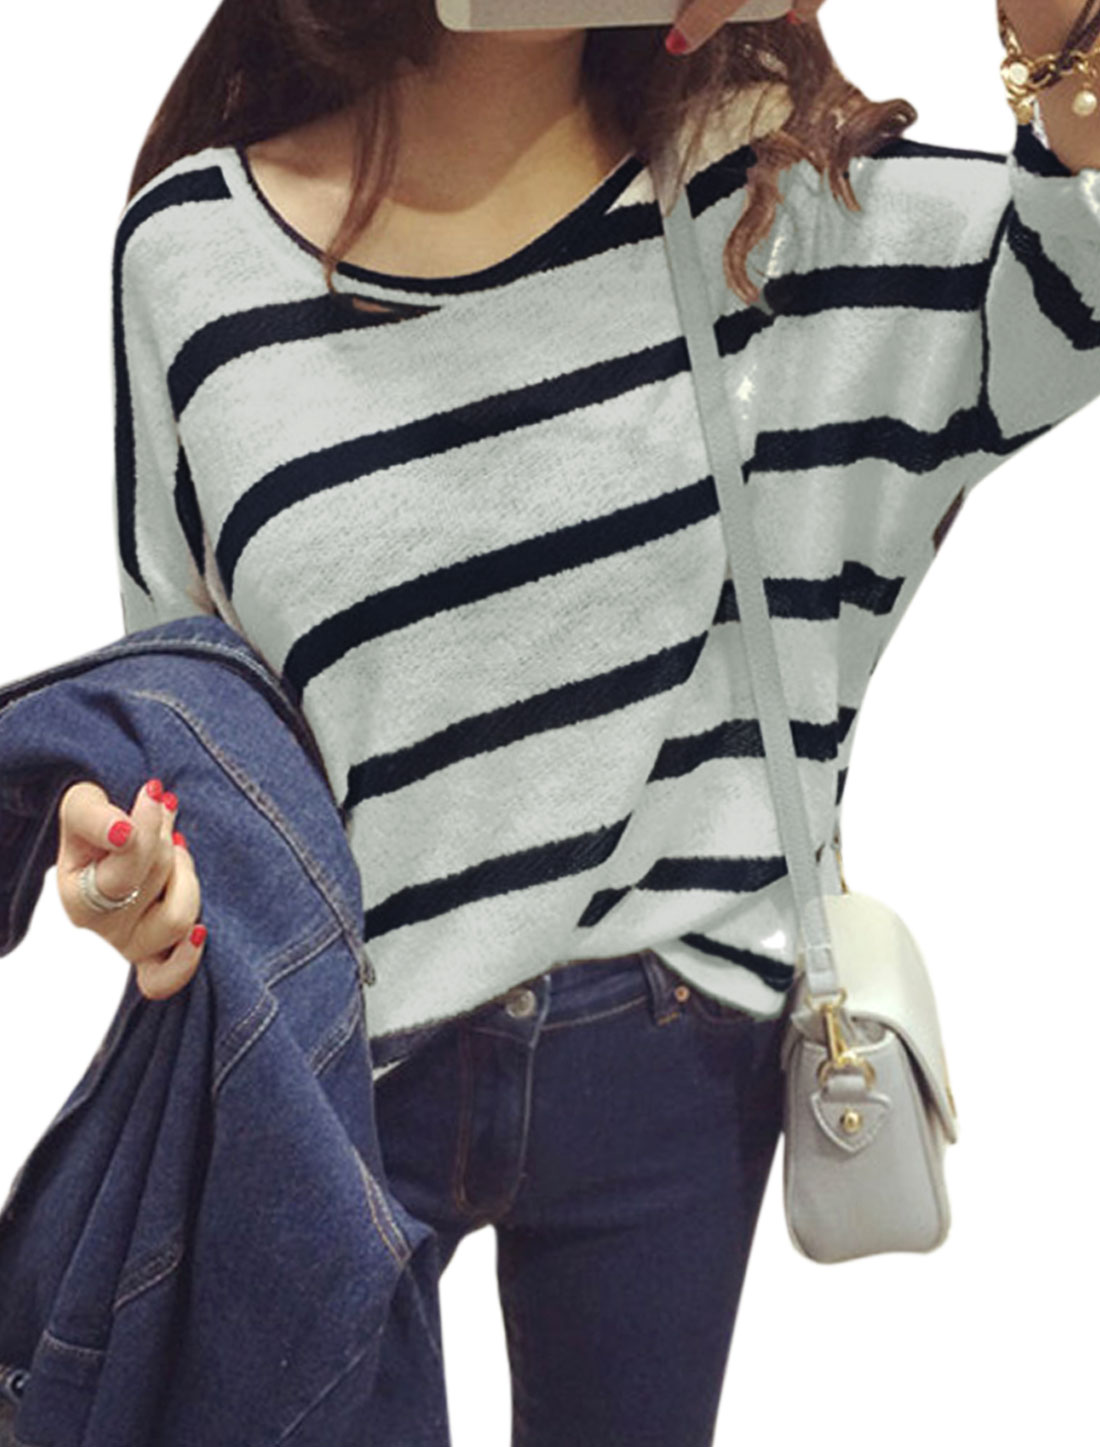 Ladies Navy Blue White Batwing Sleeves Round Neck Pullover Stripes Casual Knit Shirt S